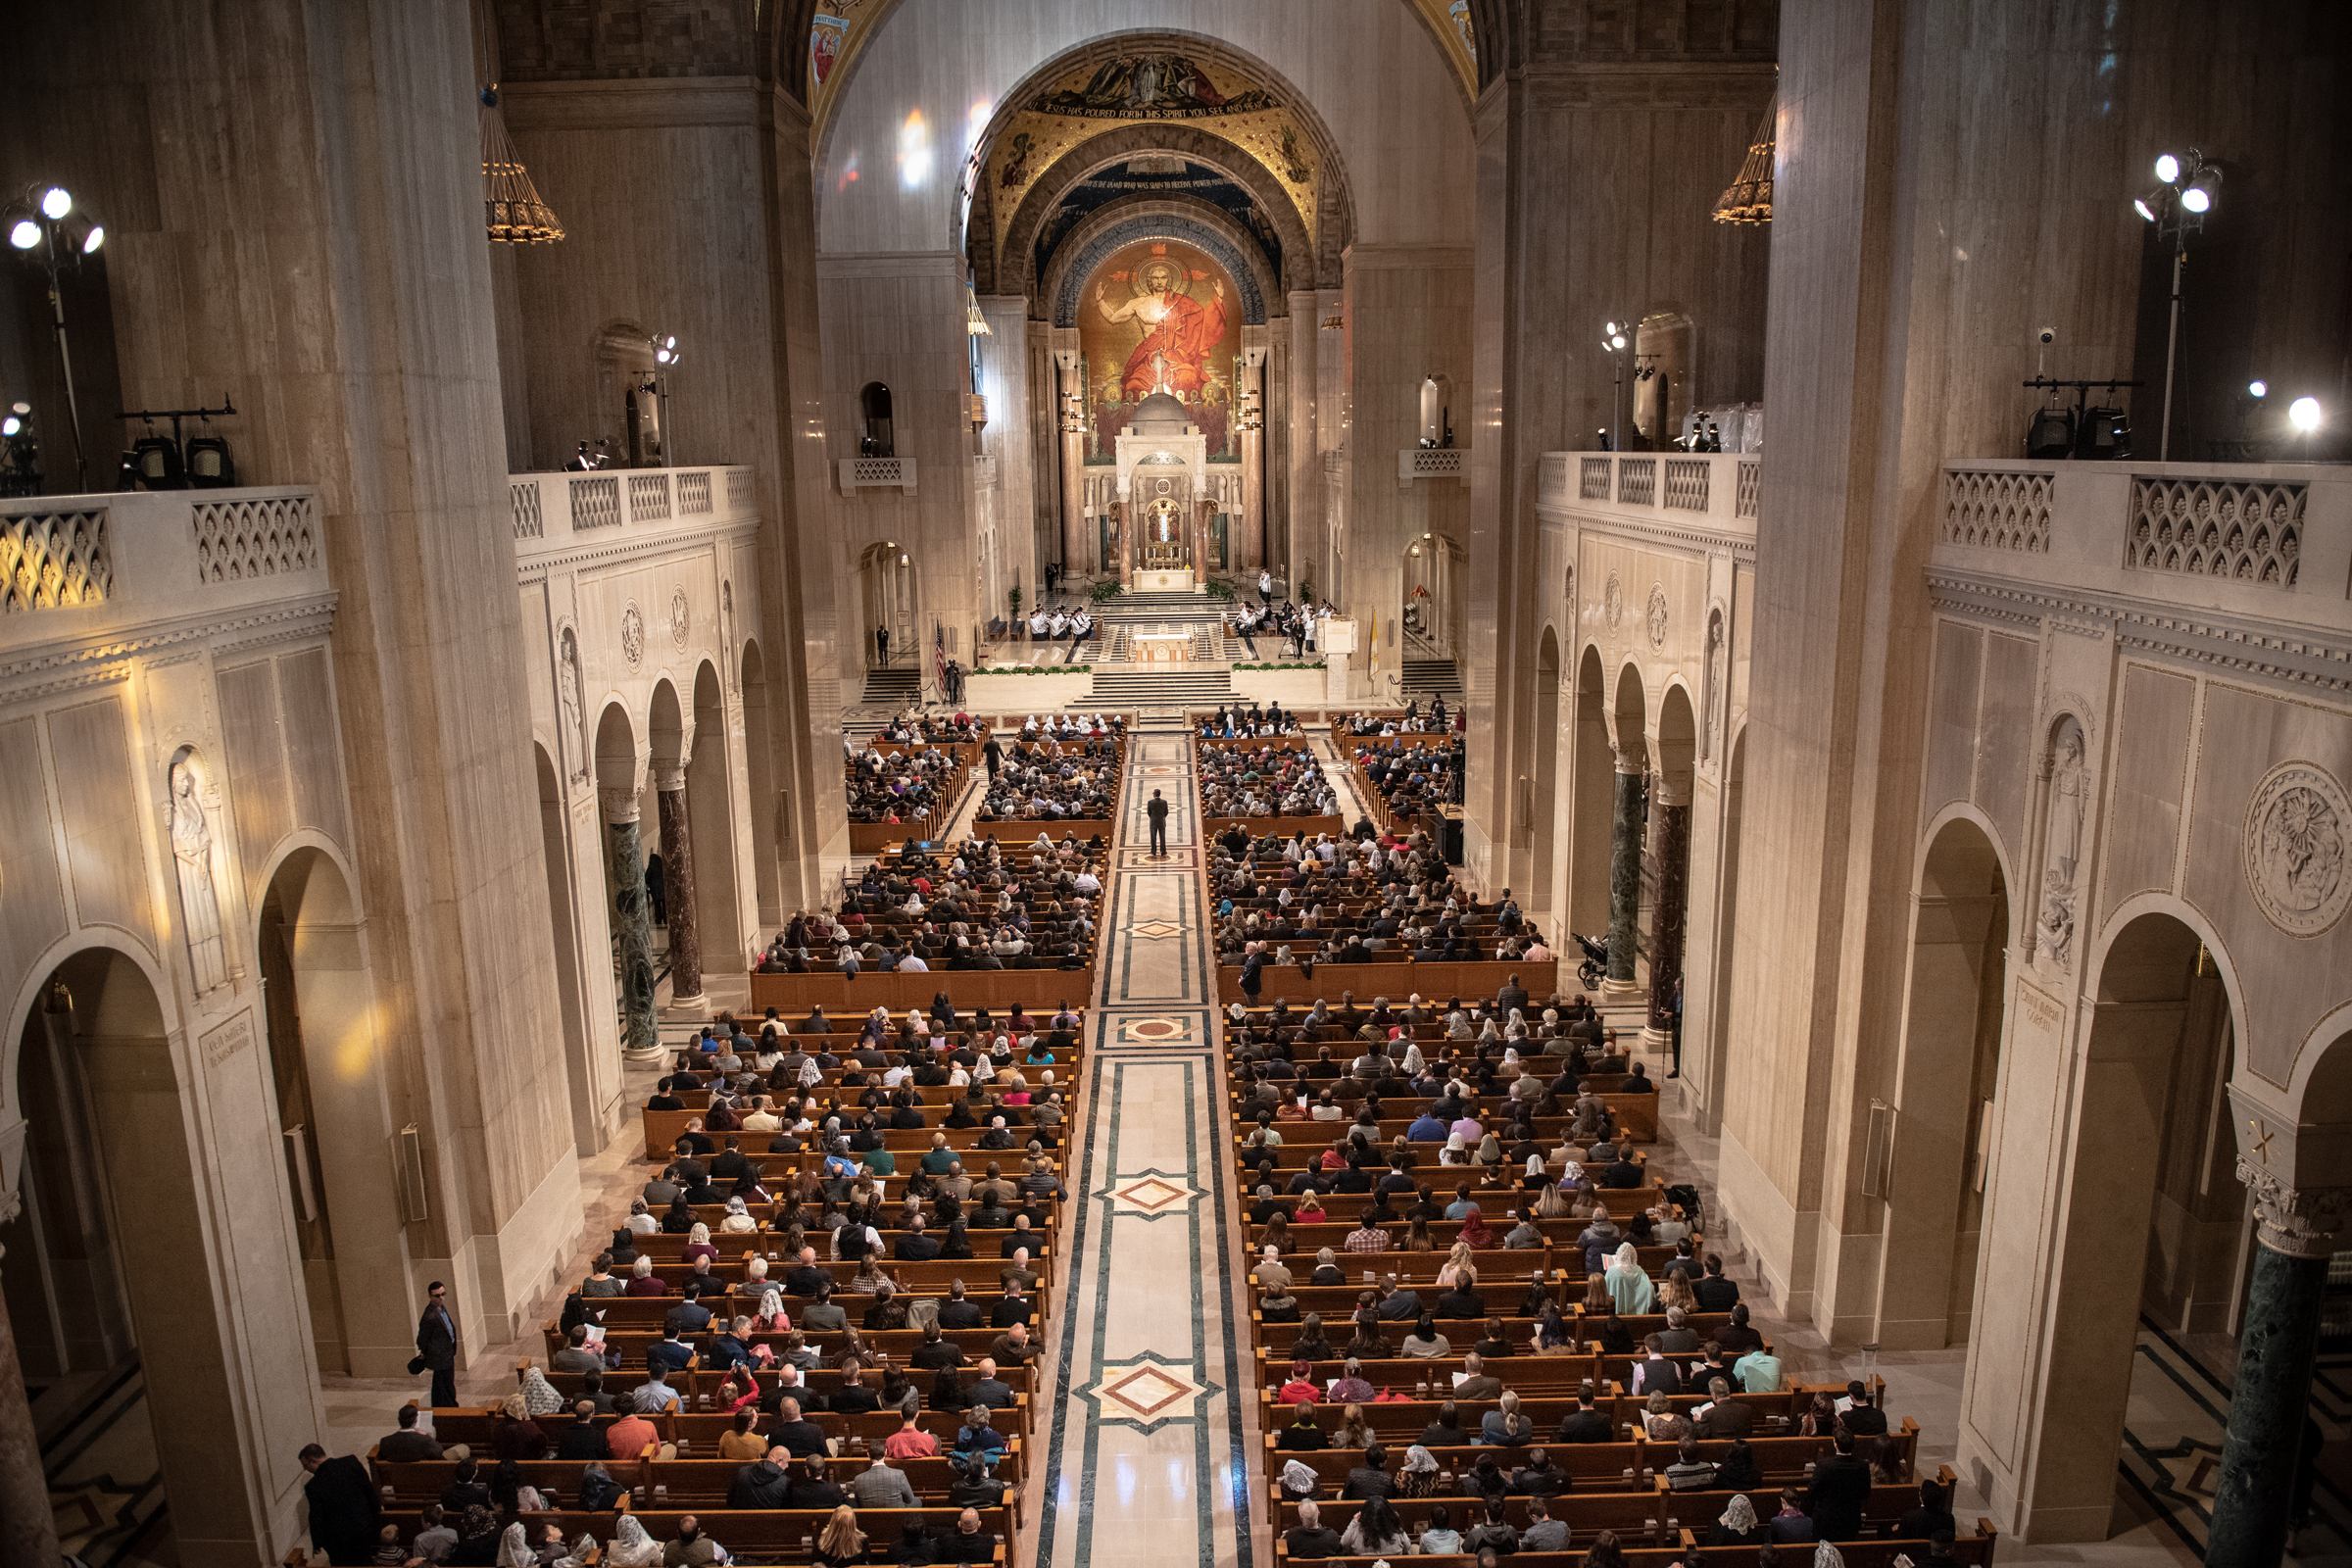 NATIONAL SHRINE OF THE BASILICA OF THE IMMACULATE CONCEPTION WASHINGTON